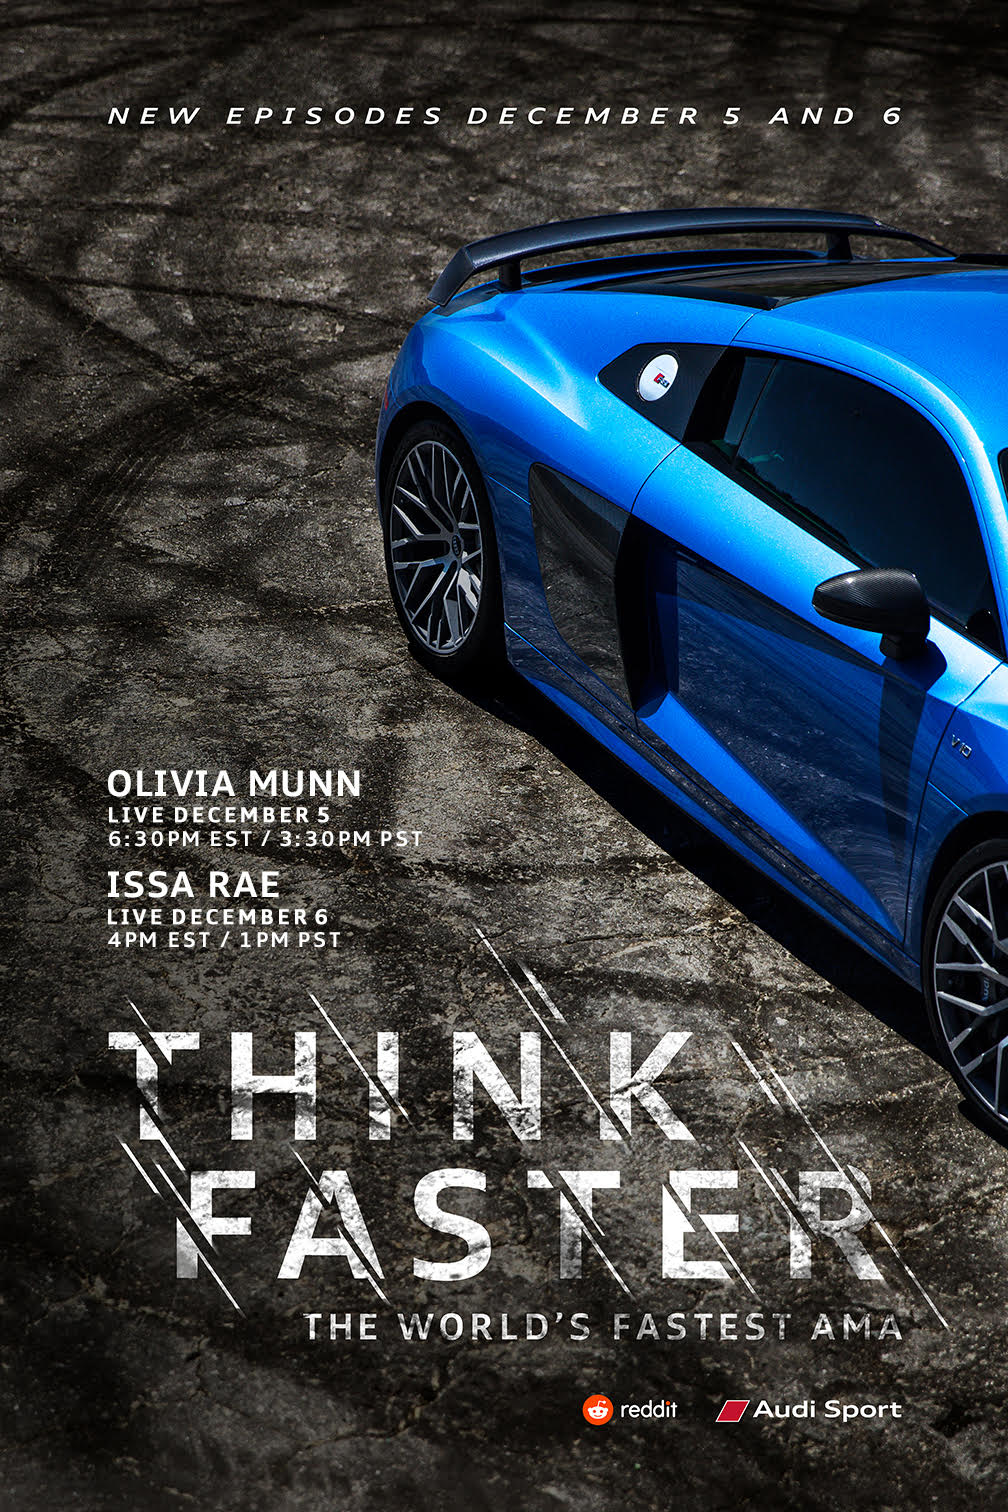 Audi teams up with Reddit for the second installment of the world fastest livestream AMA series - Think Faster